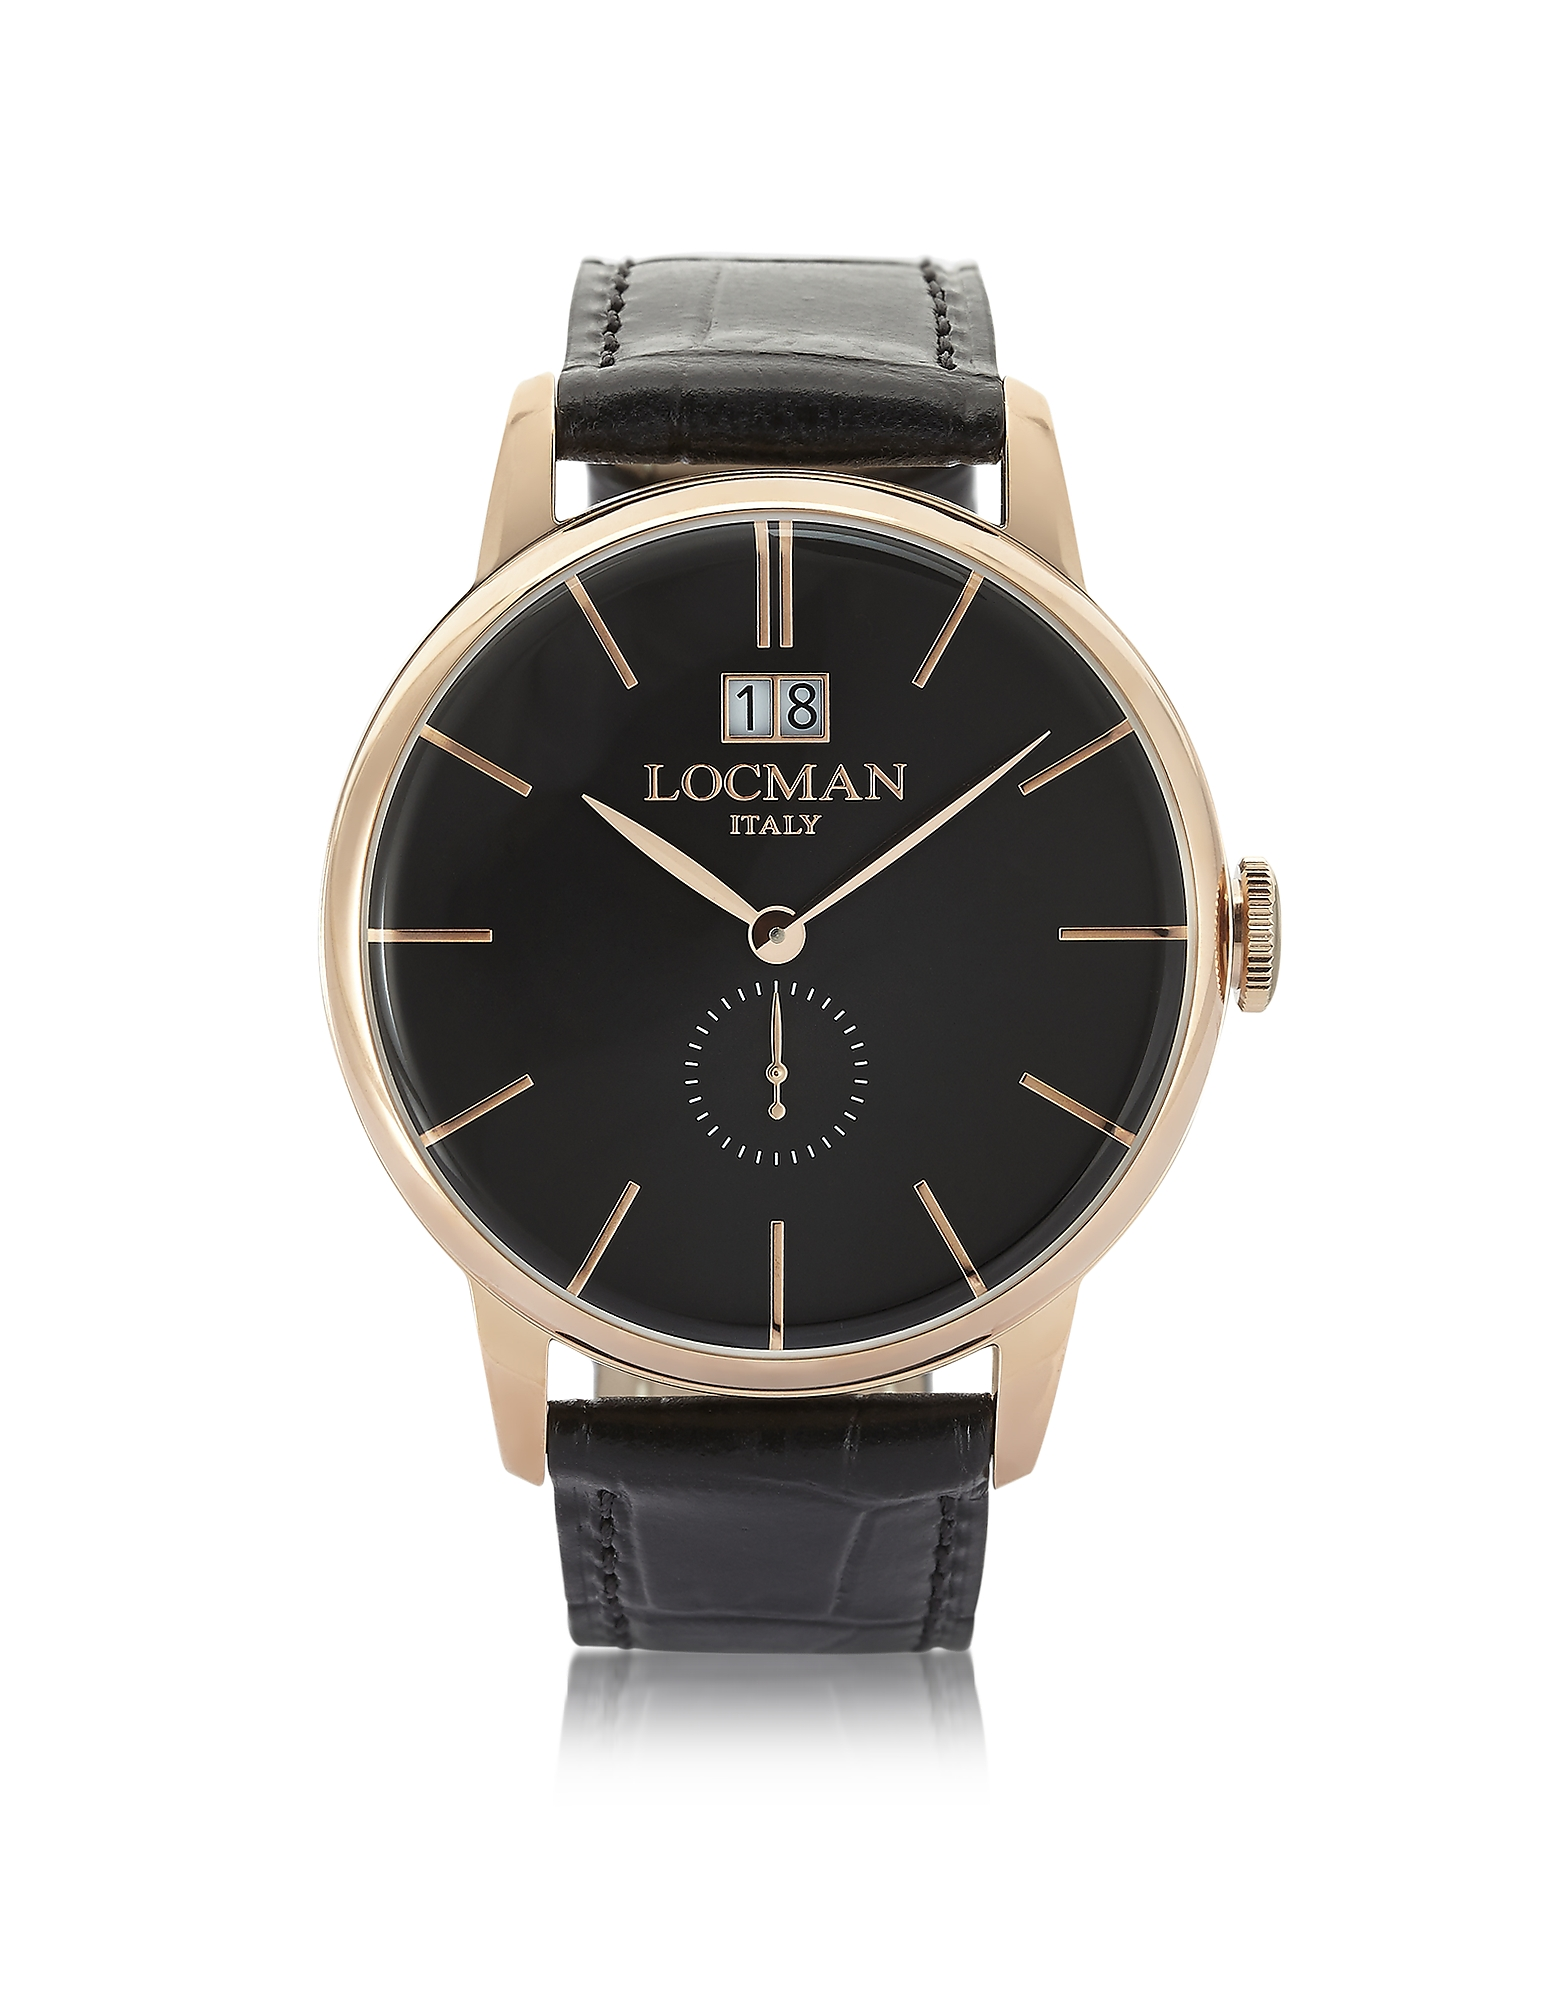 Locman Men's Watches, 1960 Rose Gold PVD Stainless Steel Men's Watch w/Black Croco Embossed Leather